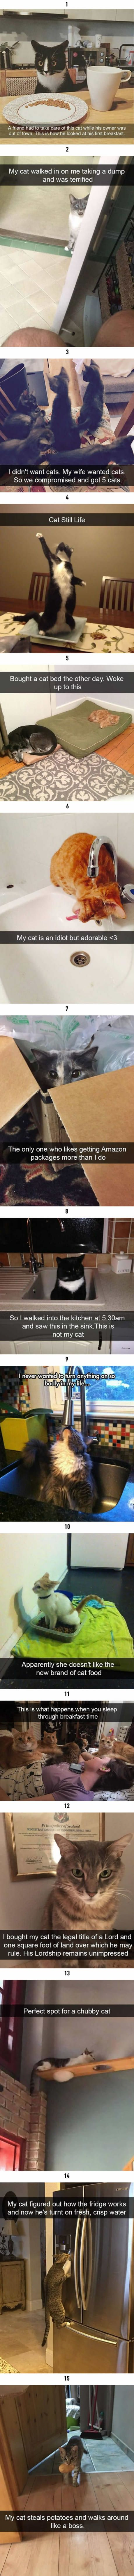 15 Funny Cat Snapchats You Can't Miss